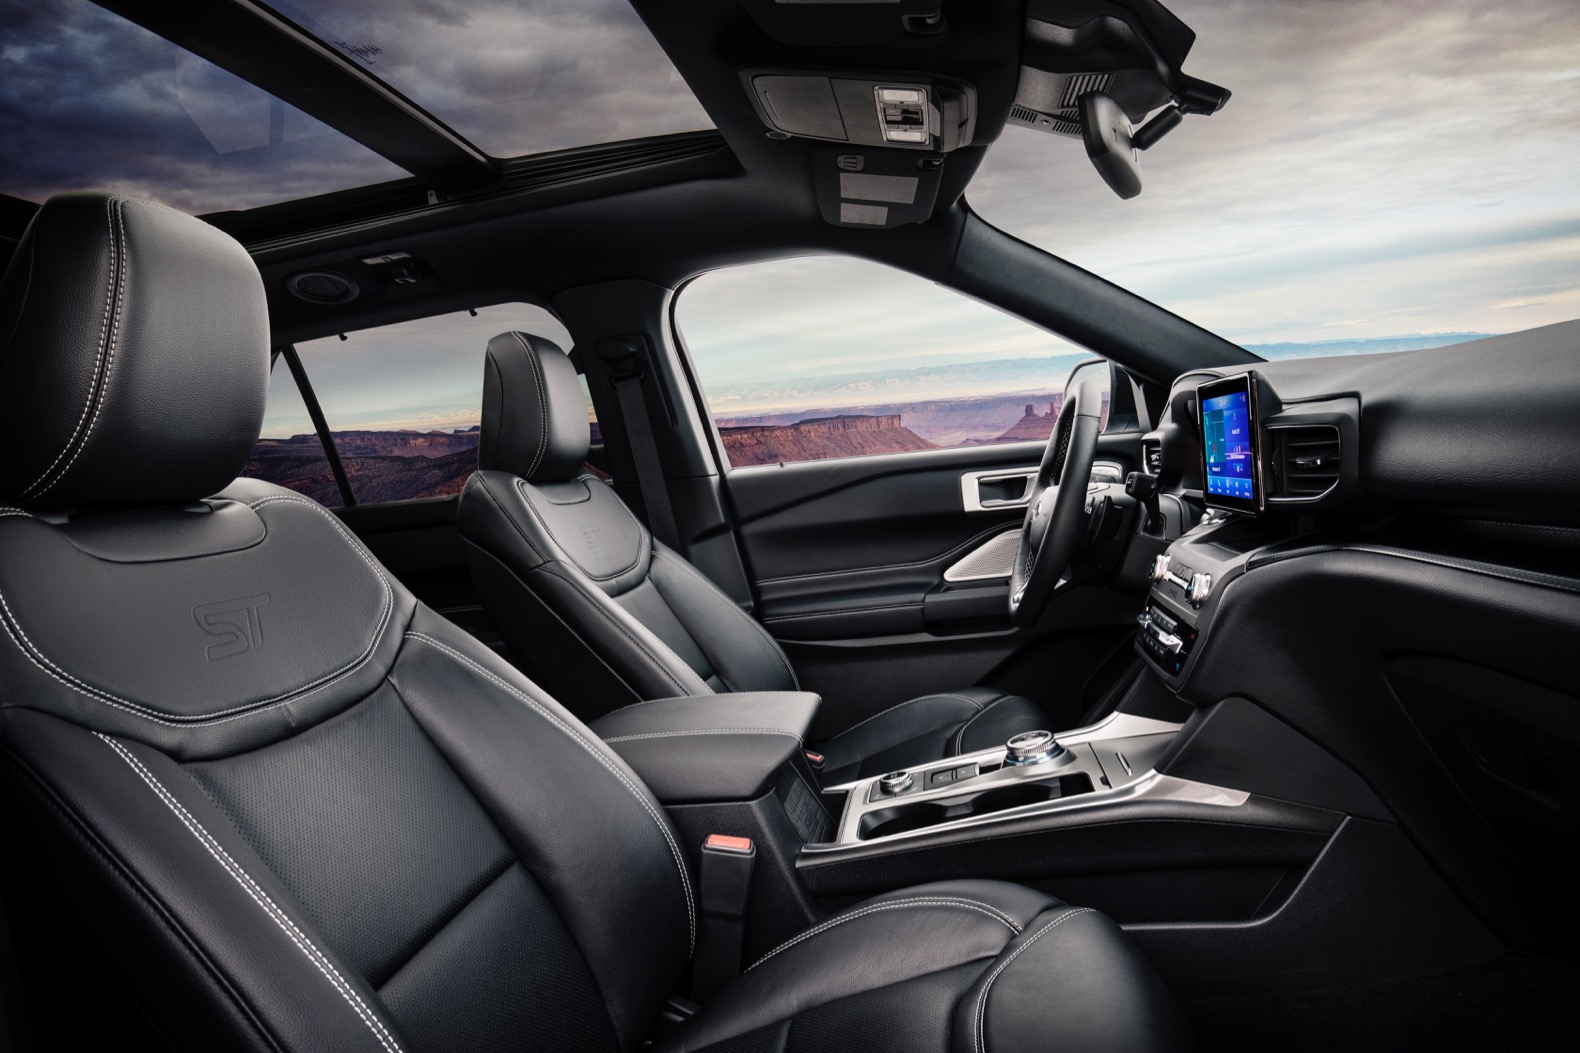 2020 Ford Explorer St And Hybrid Debut In Detroit The